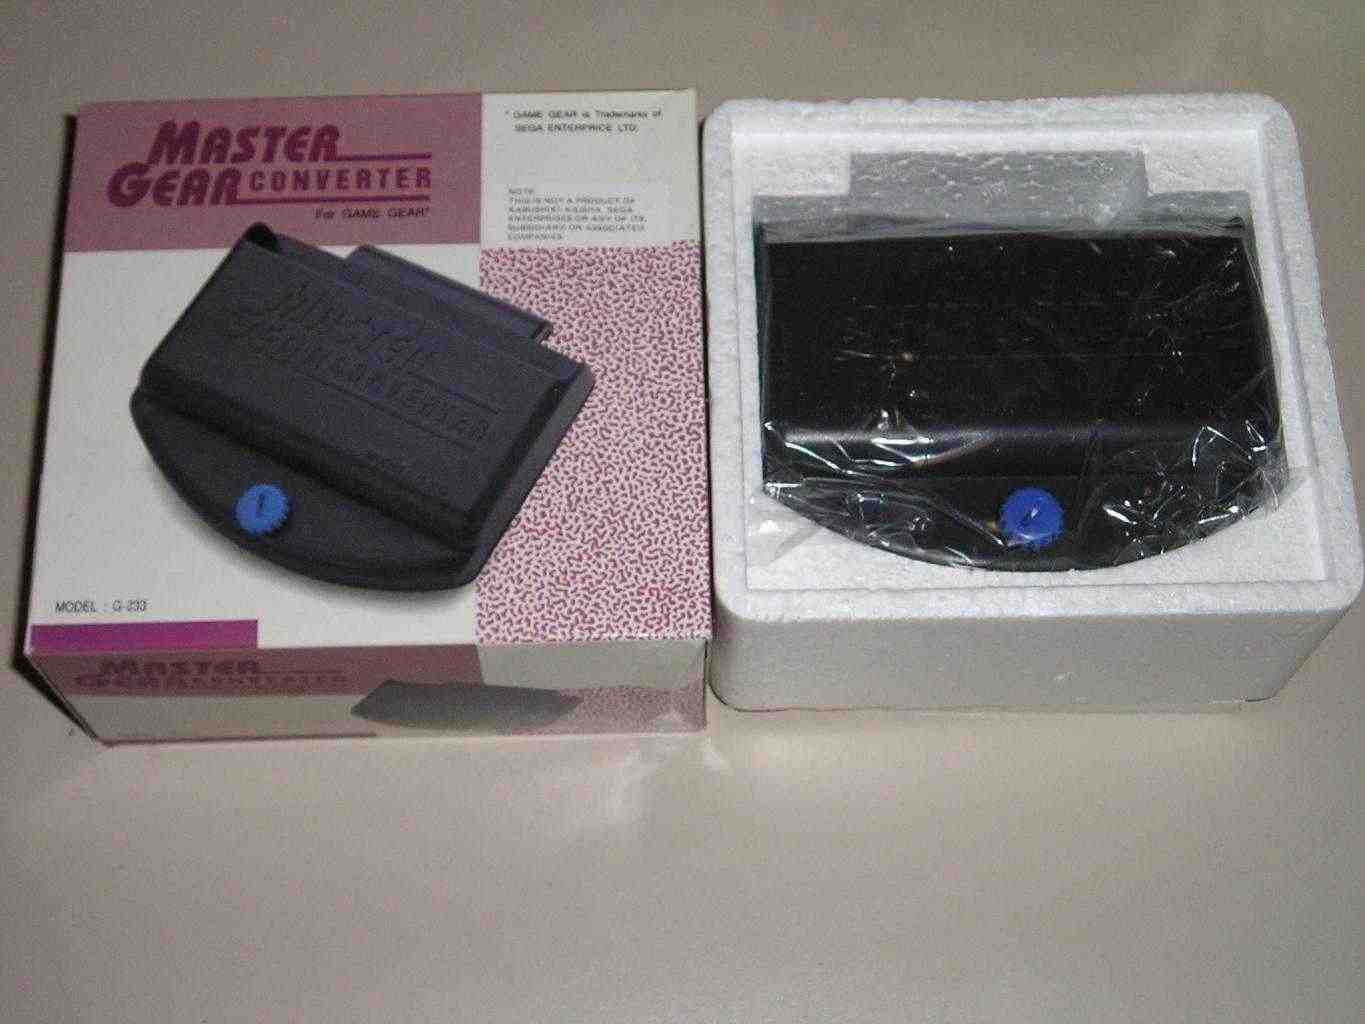 Adattatore sega game gear